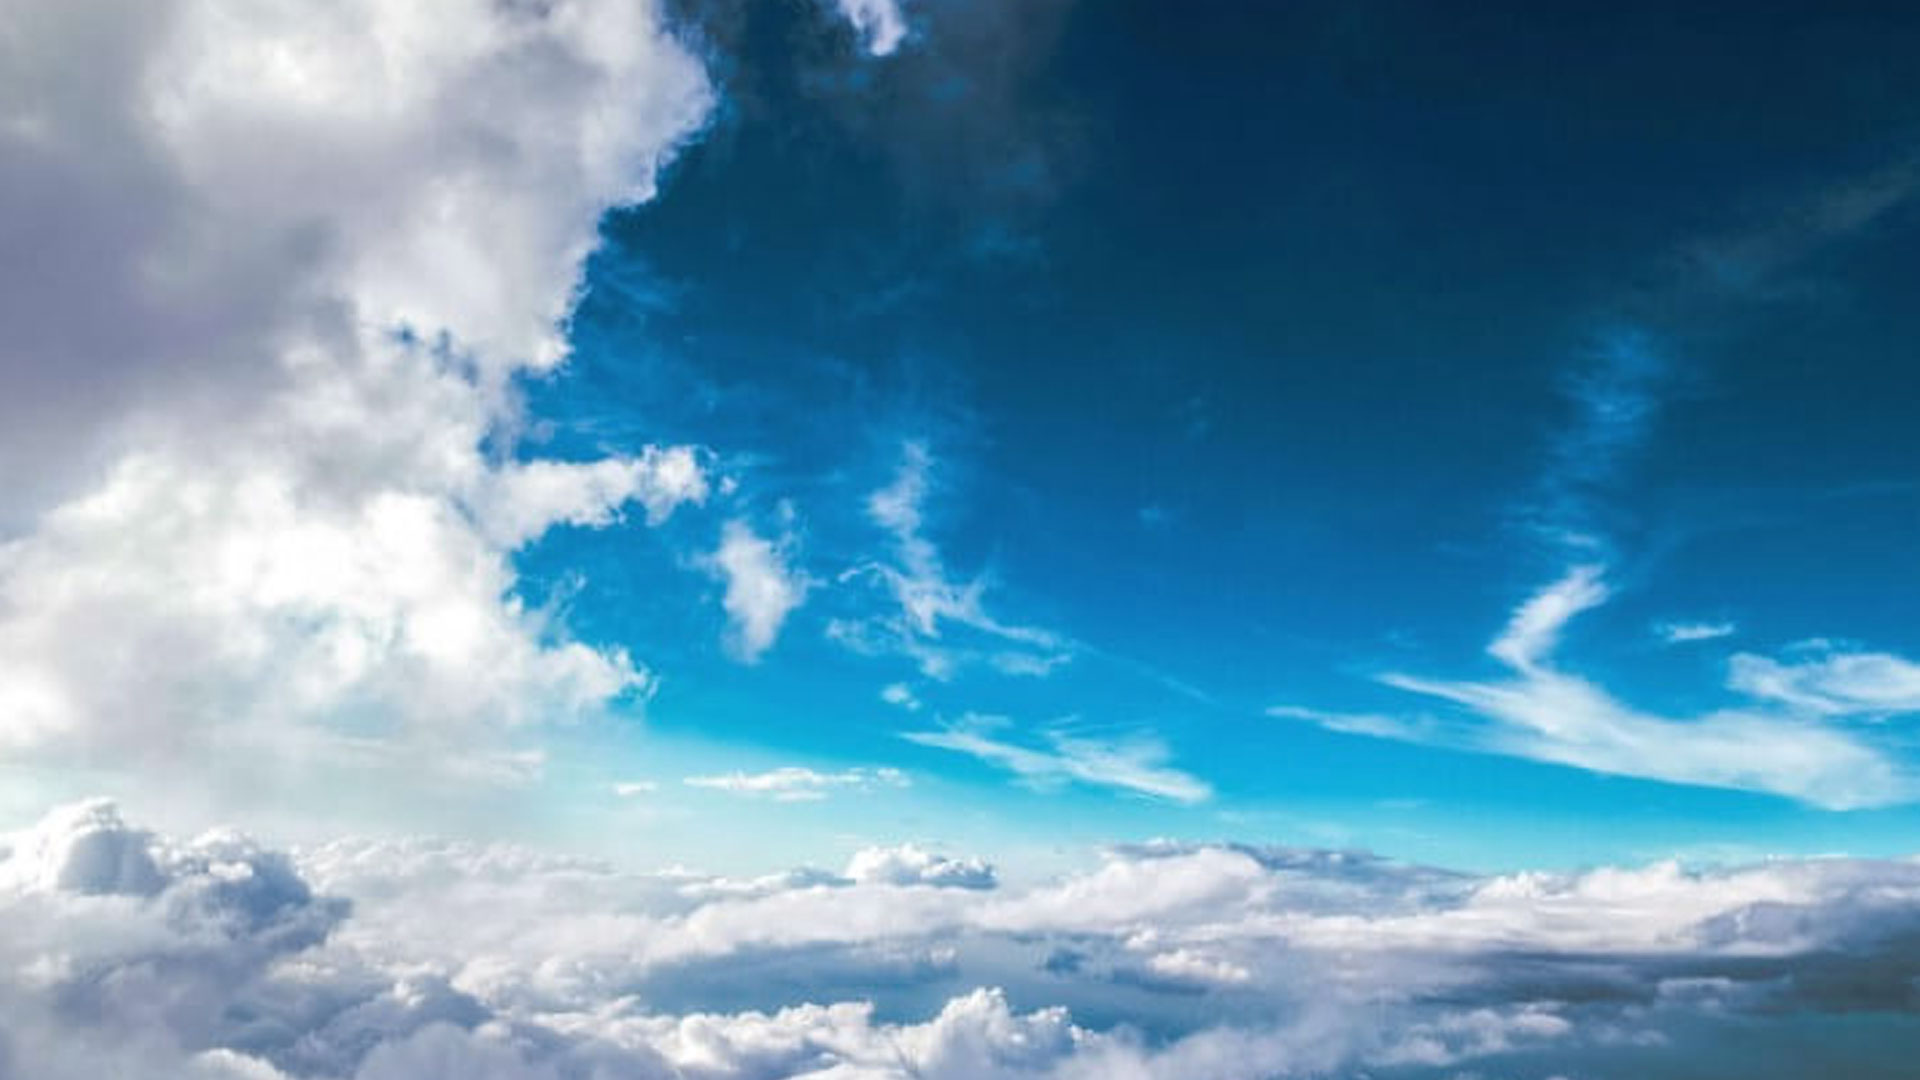 Blue Sky With Cloudy Background